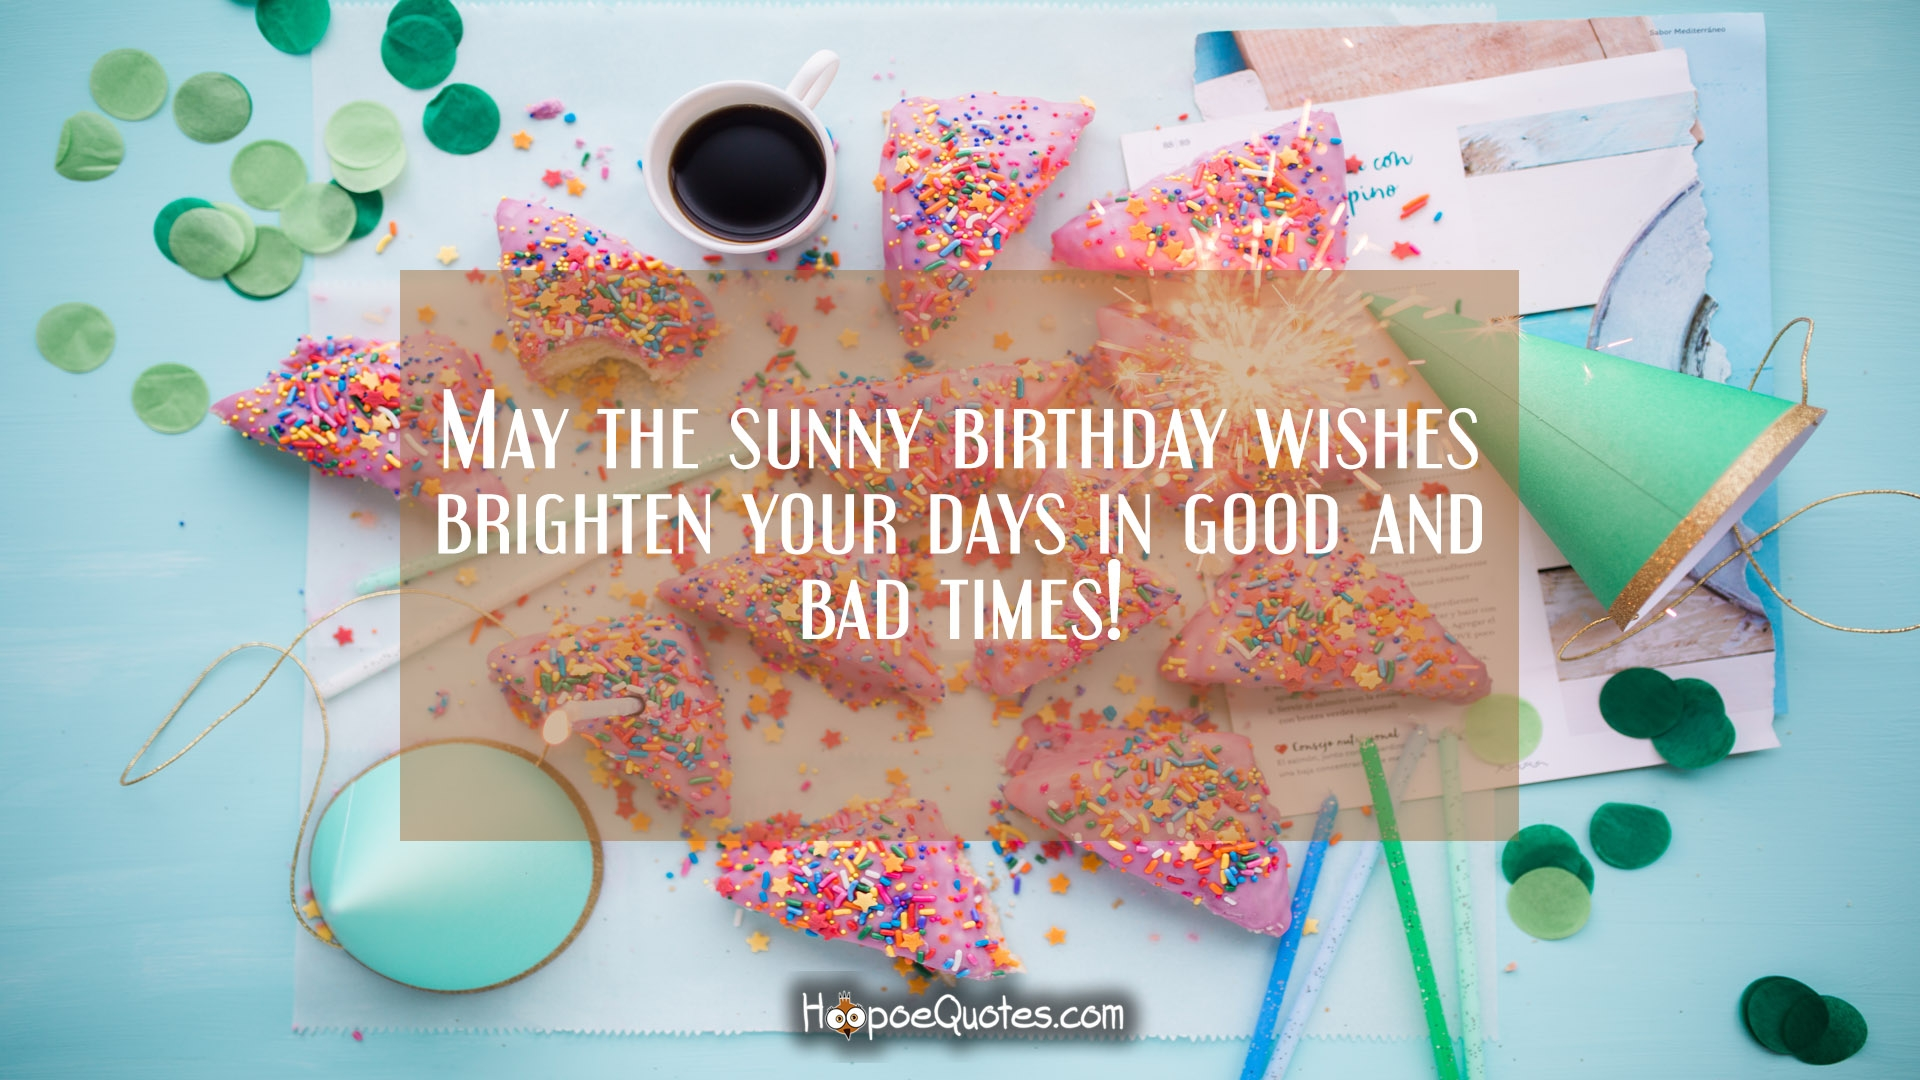 birthday wishes high quality images ; 6e165ba5873f19ac19943ff26e242592